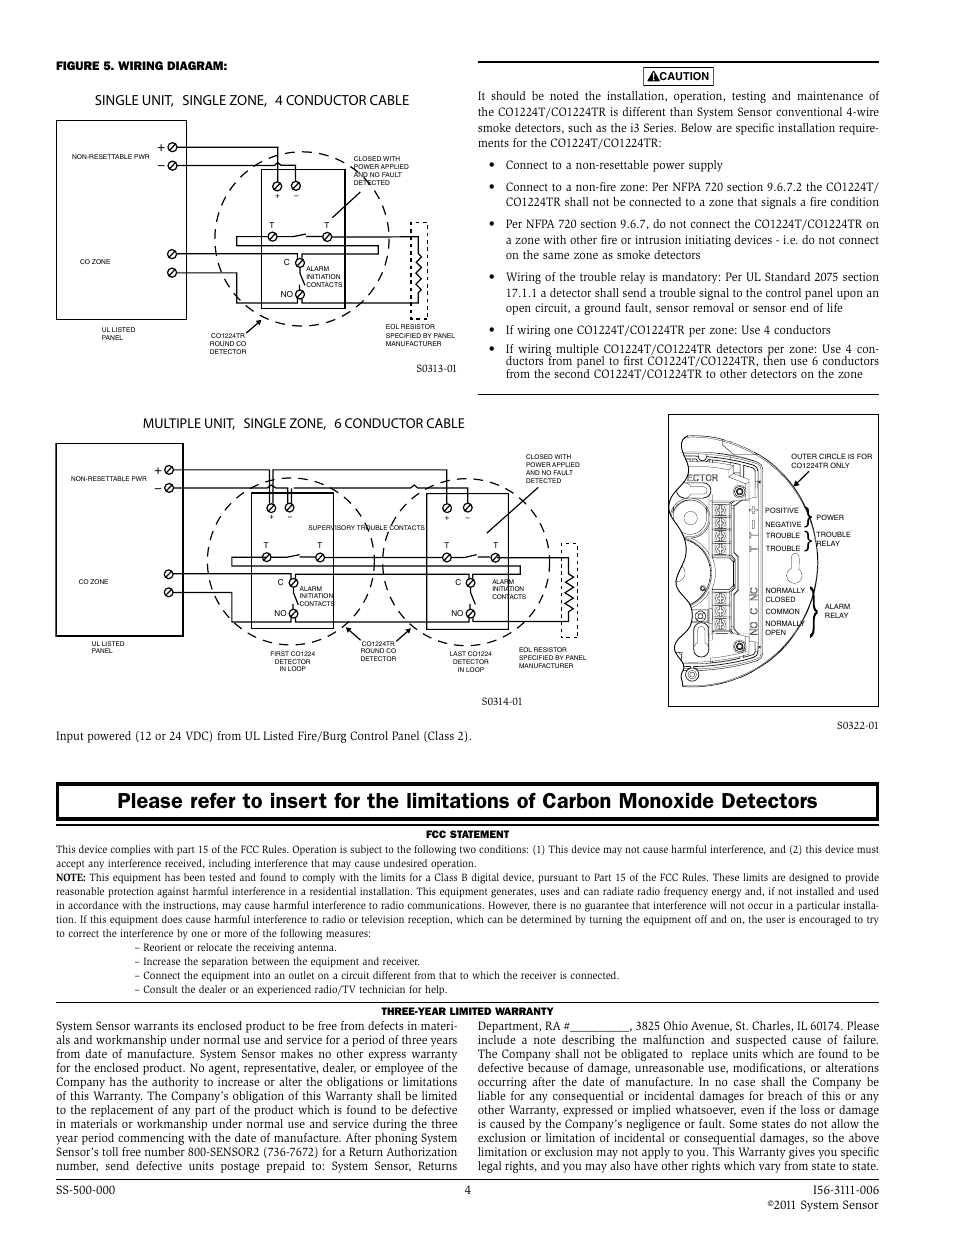 single unit single zone 4 conductor cable multiple unit single single unit single zone 4 conductor cable multiple unit single zone 6 conductor cable system sensor co1224t and co1224tr user manual page 4 4